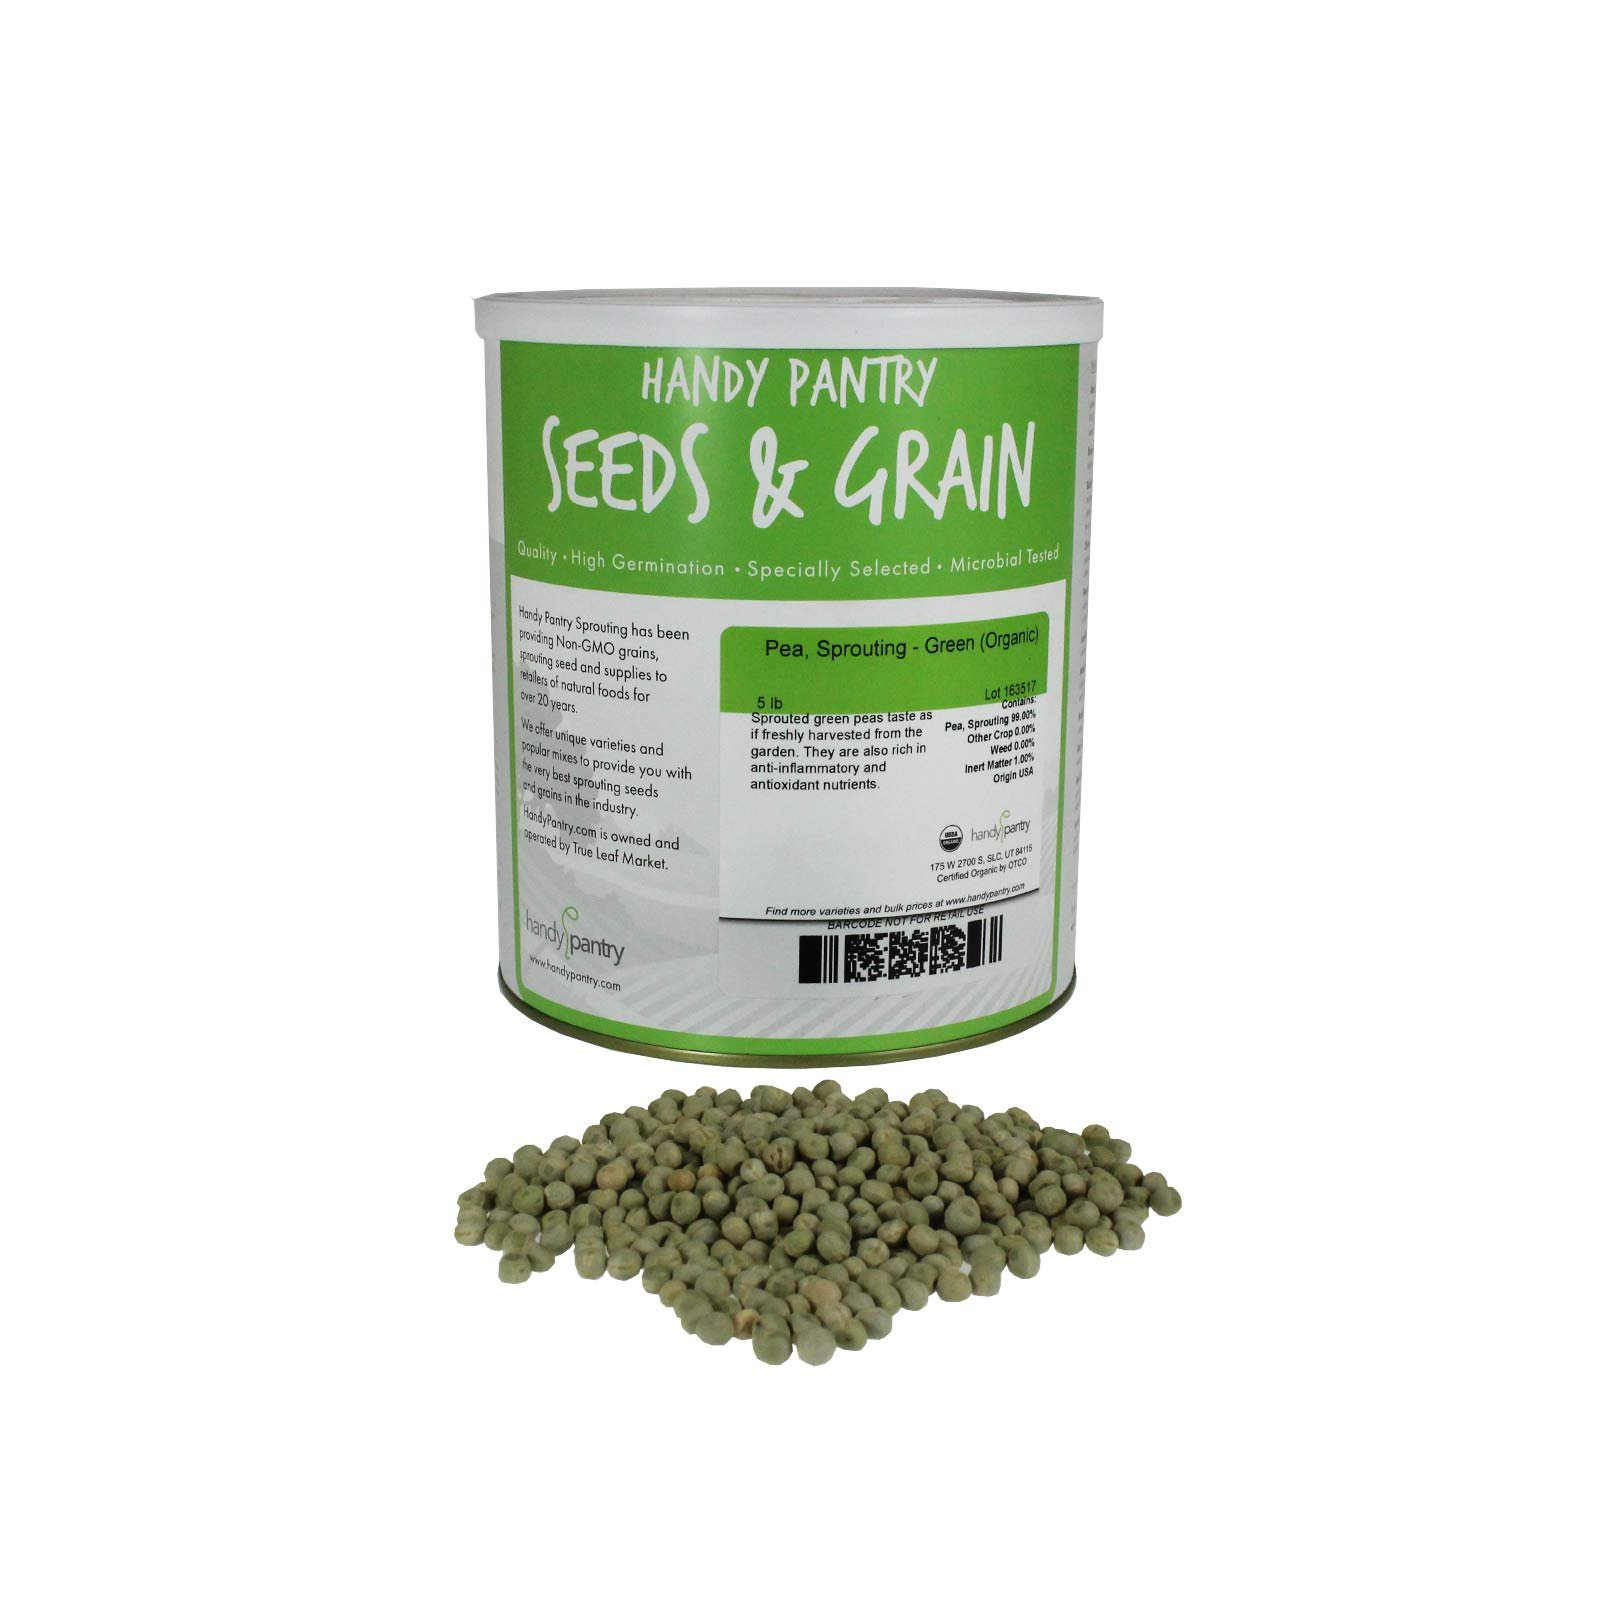 Certified Organic Dried Green Pea Sprouting Seed - 5 Lb - Handy Pantry Brand - Green Pea for Sprouts, Garden Planting, Cooking, Soup, Emergency Food Storage, Vegetable Gardening by Handy Pantry